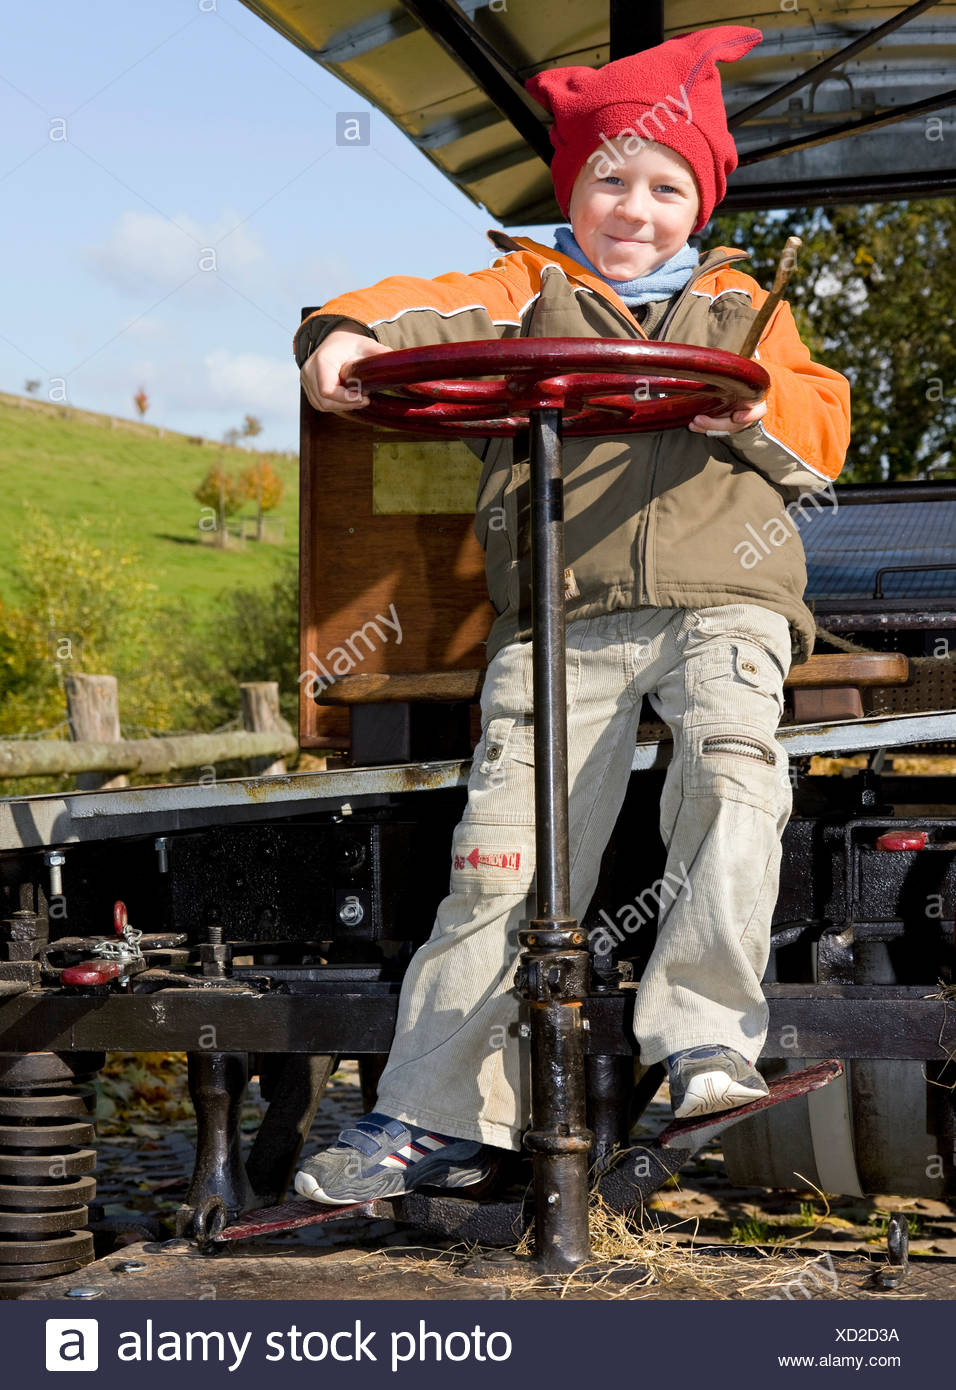 Boy, 5 years old, playing on a historic vehicle Stock Photo